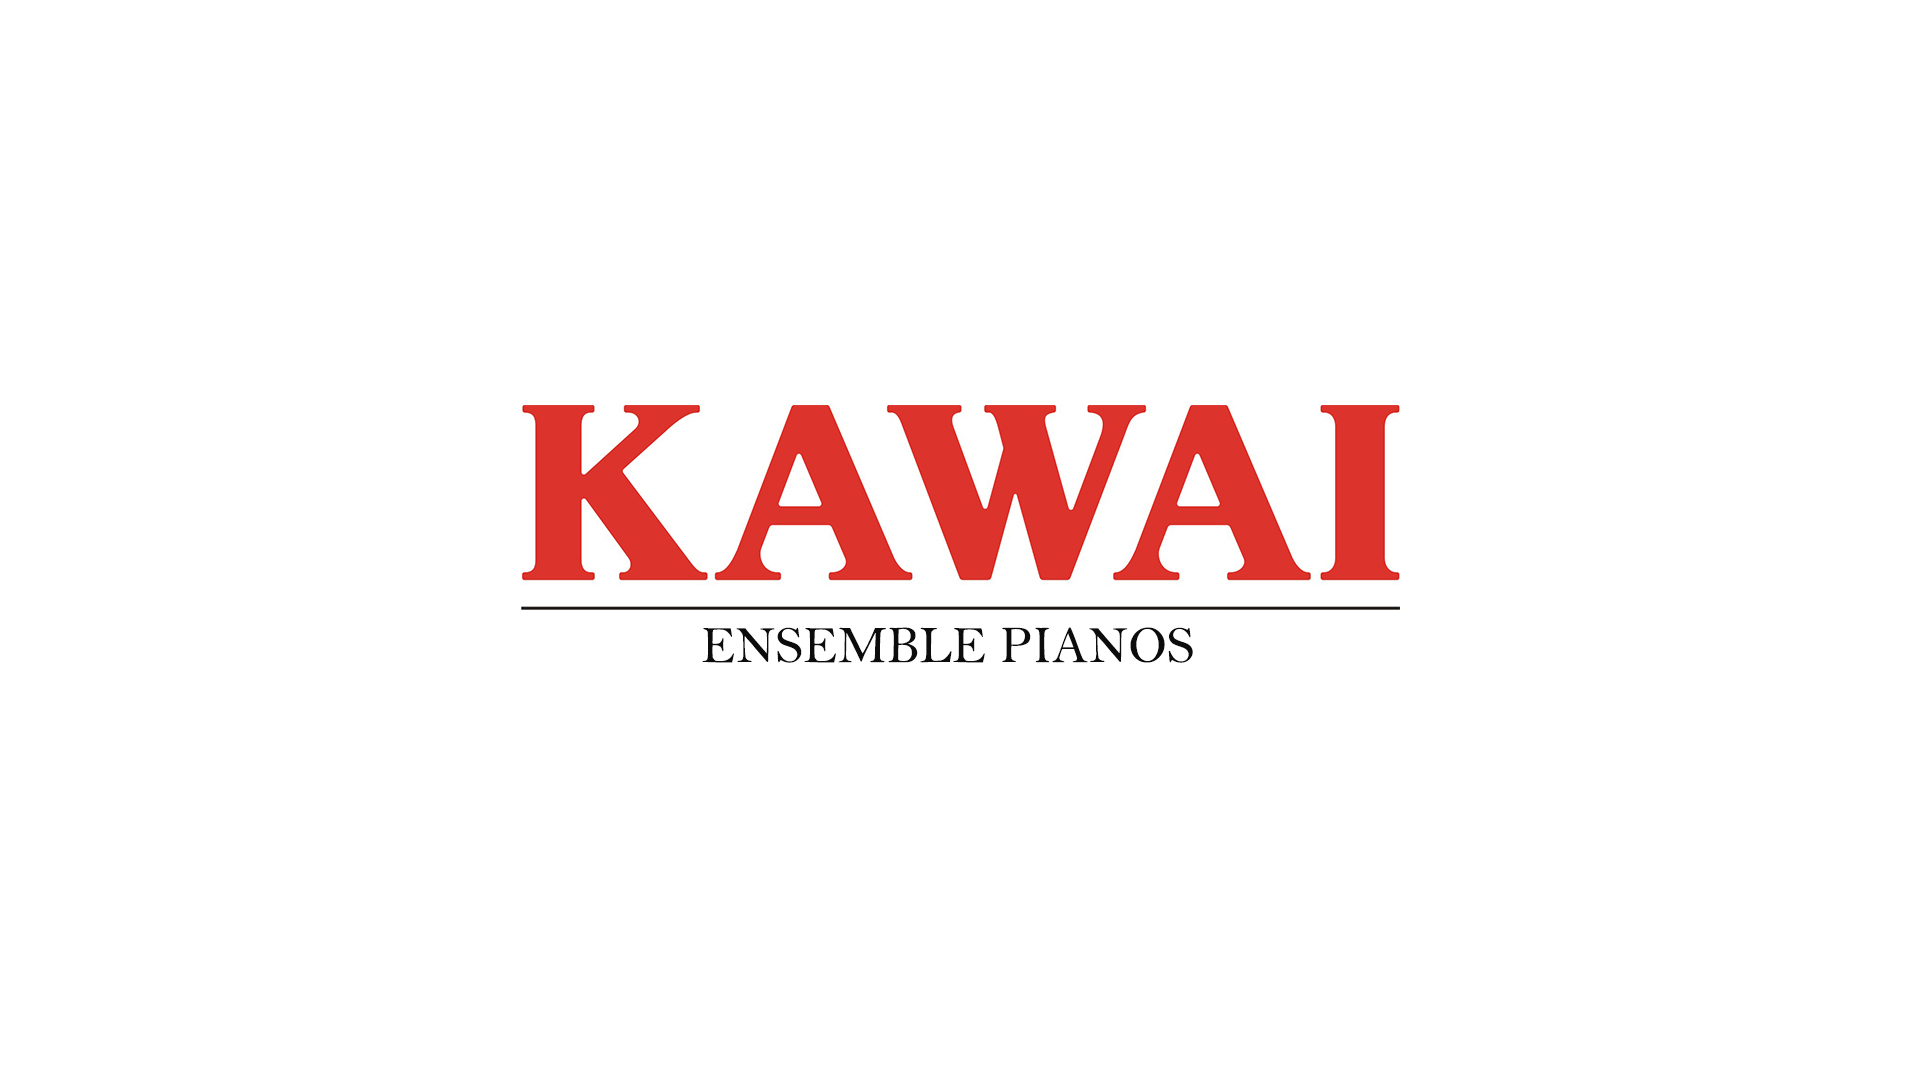 Kawai Ensemble Pianos Owner's Manuals